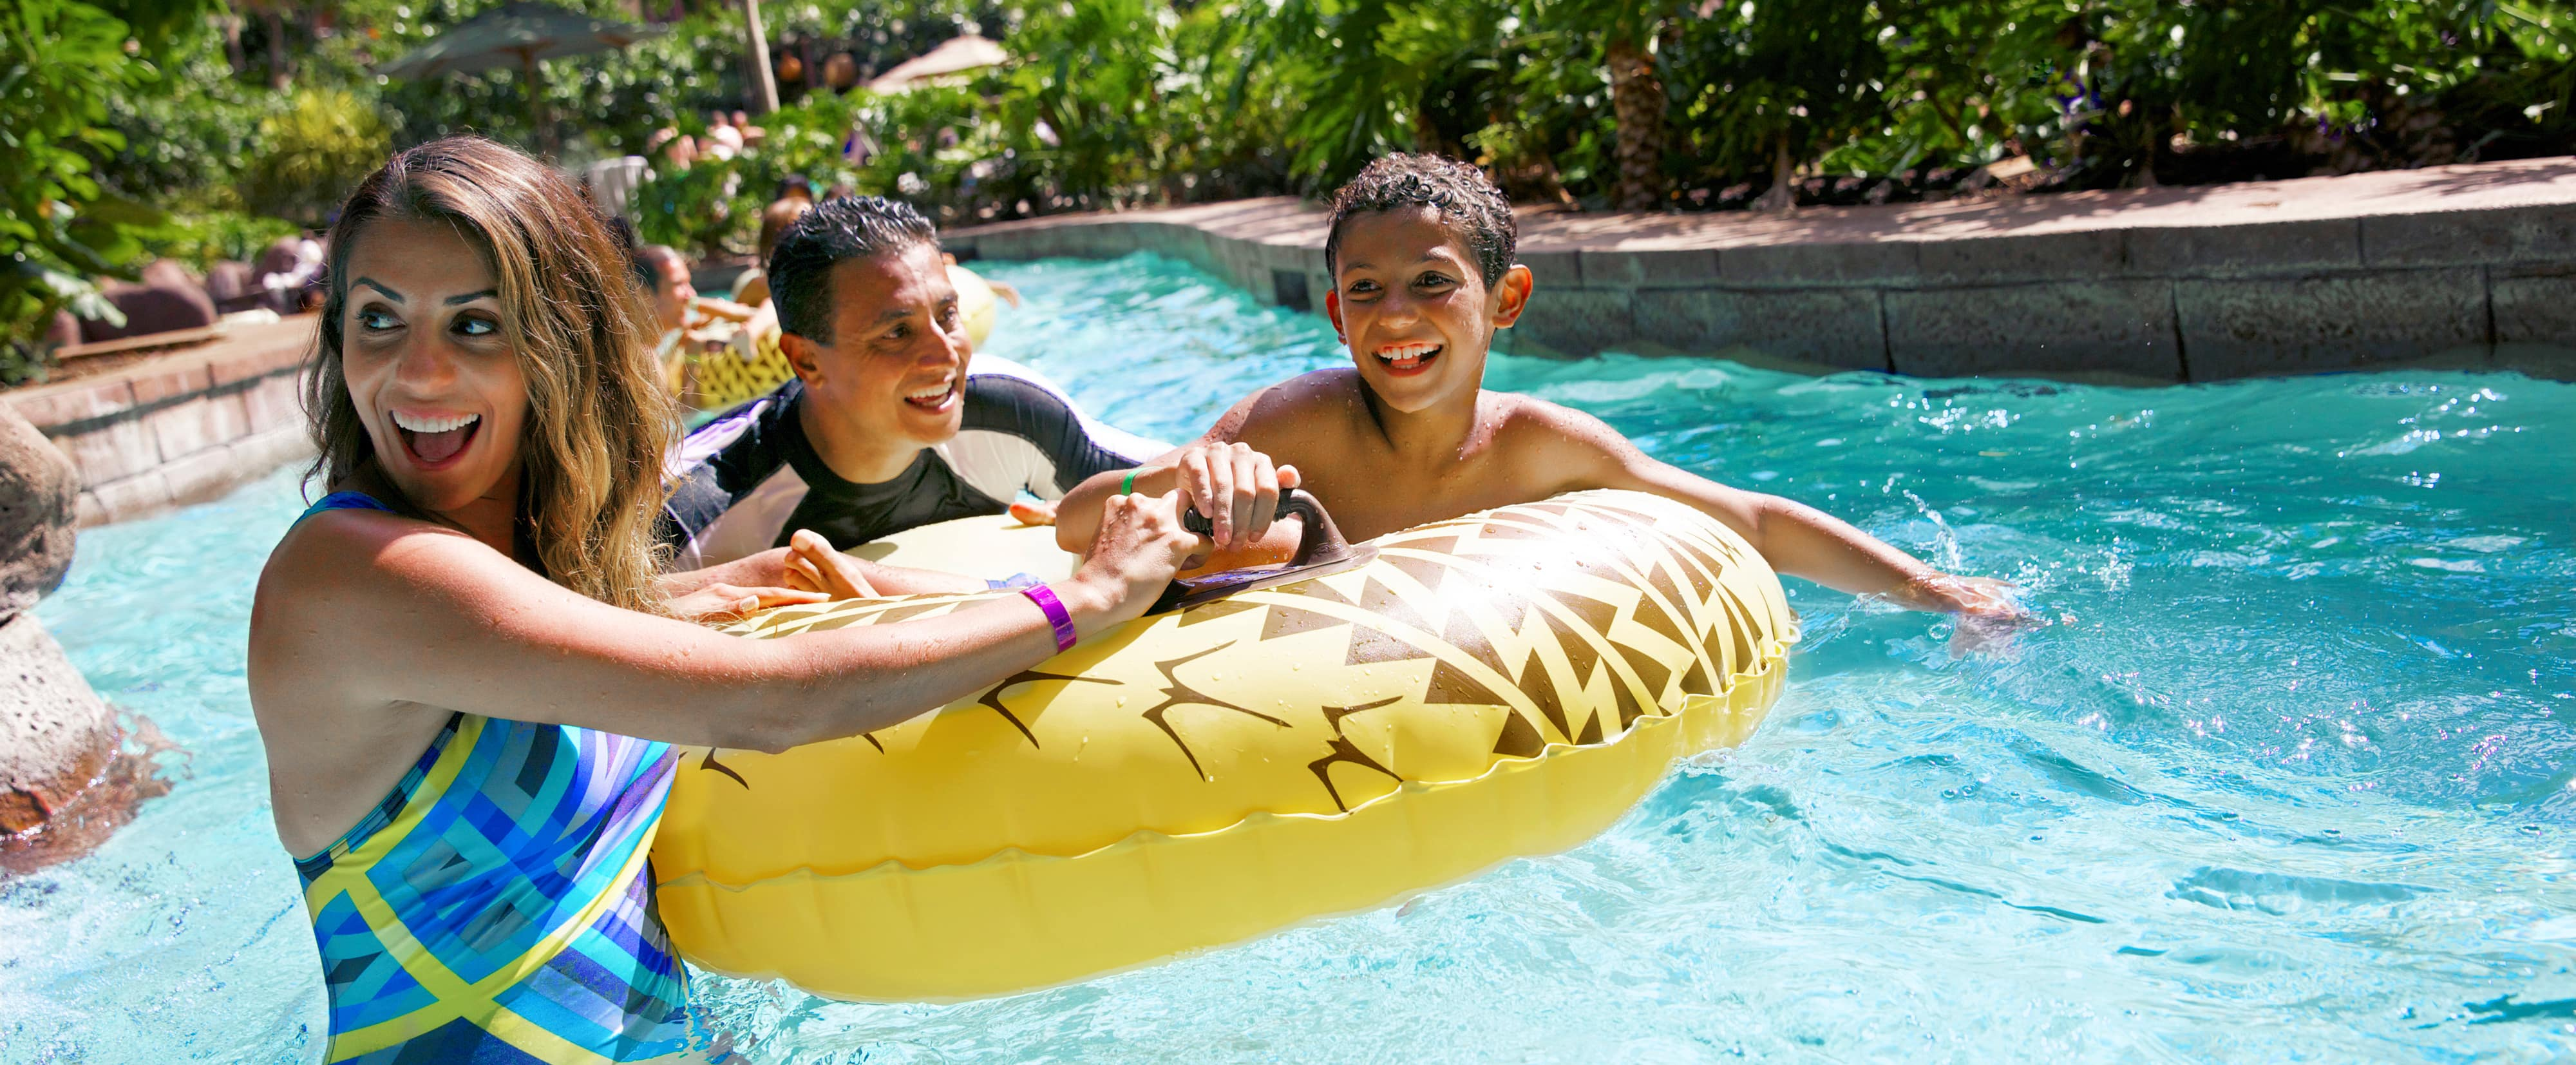 A smiling mother, father and son hold on to an inner tube as they move down a lazy river